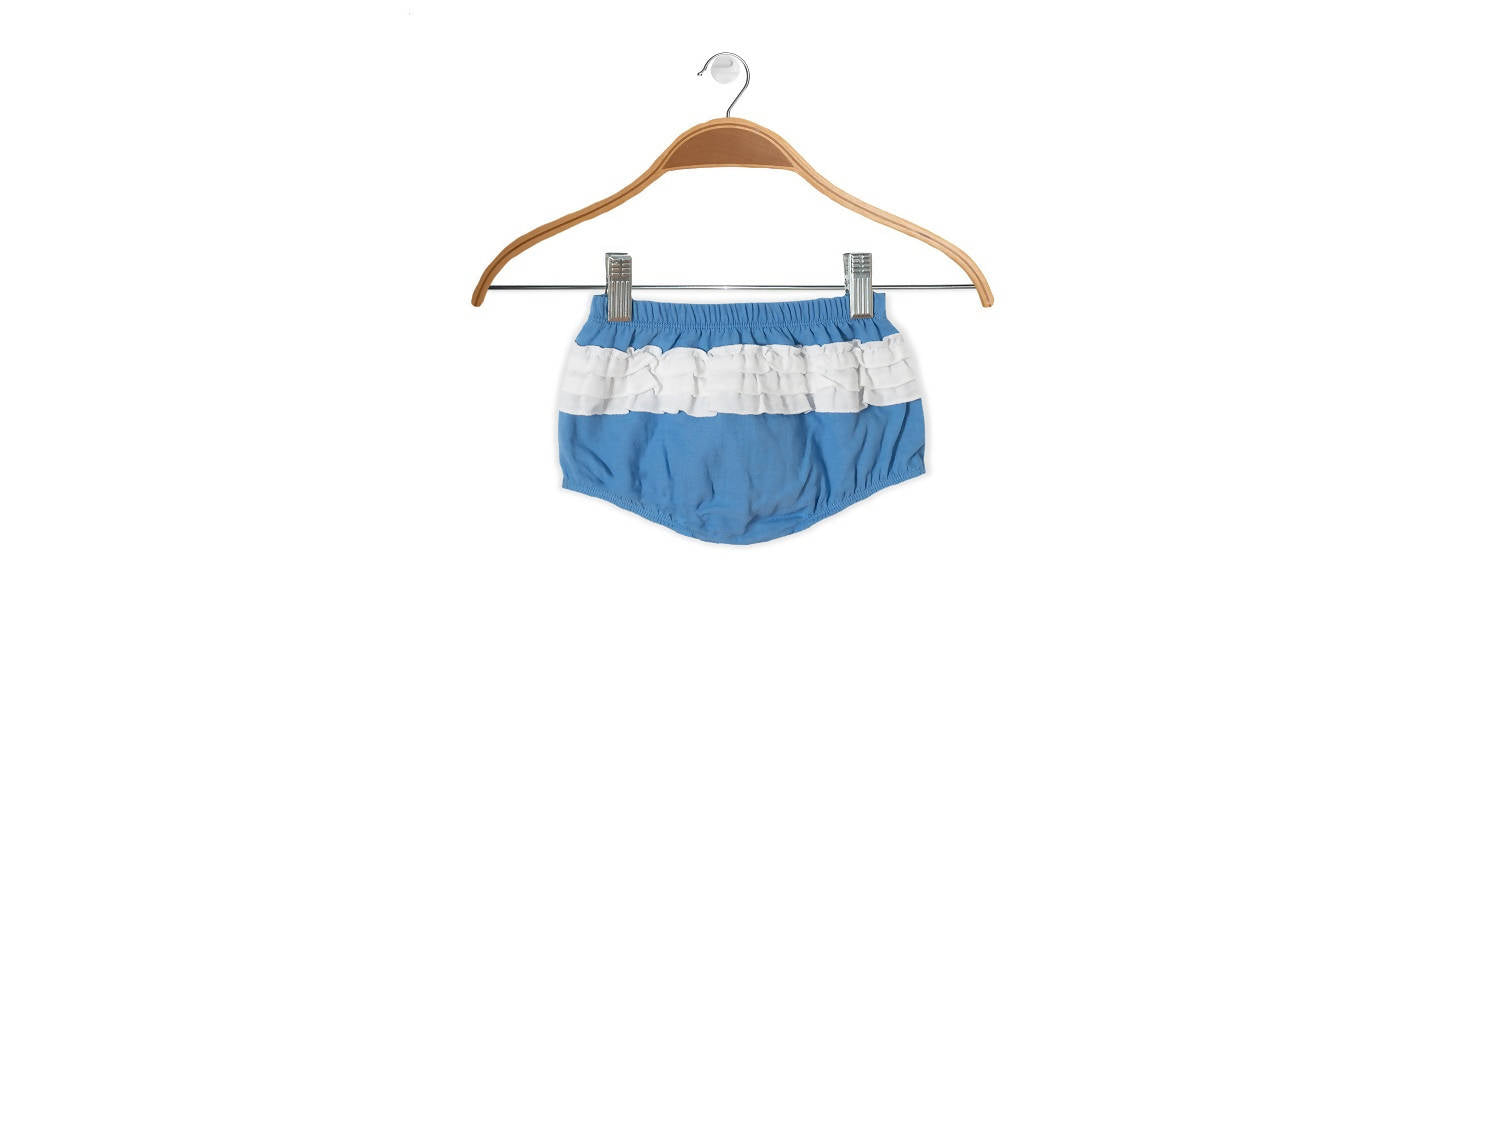 Peter Jo Kids Organic Shorts Gigil Puff shorts for baby girls blue made of organic muslin cotton